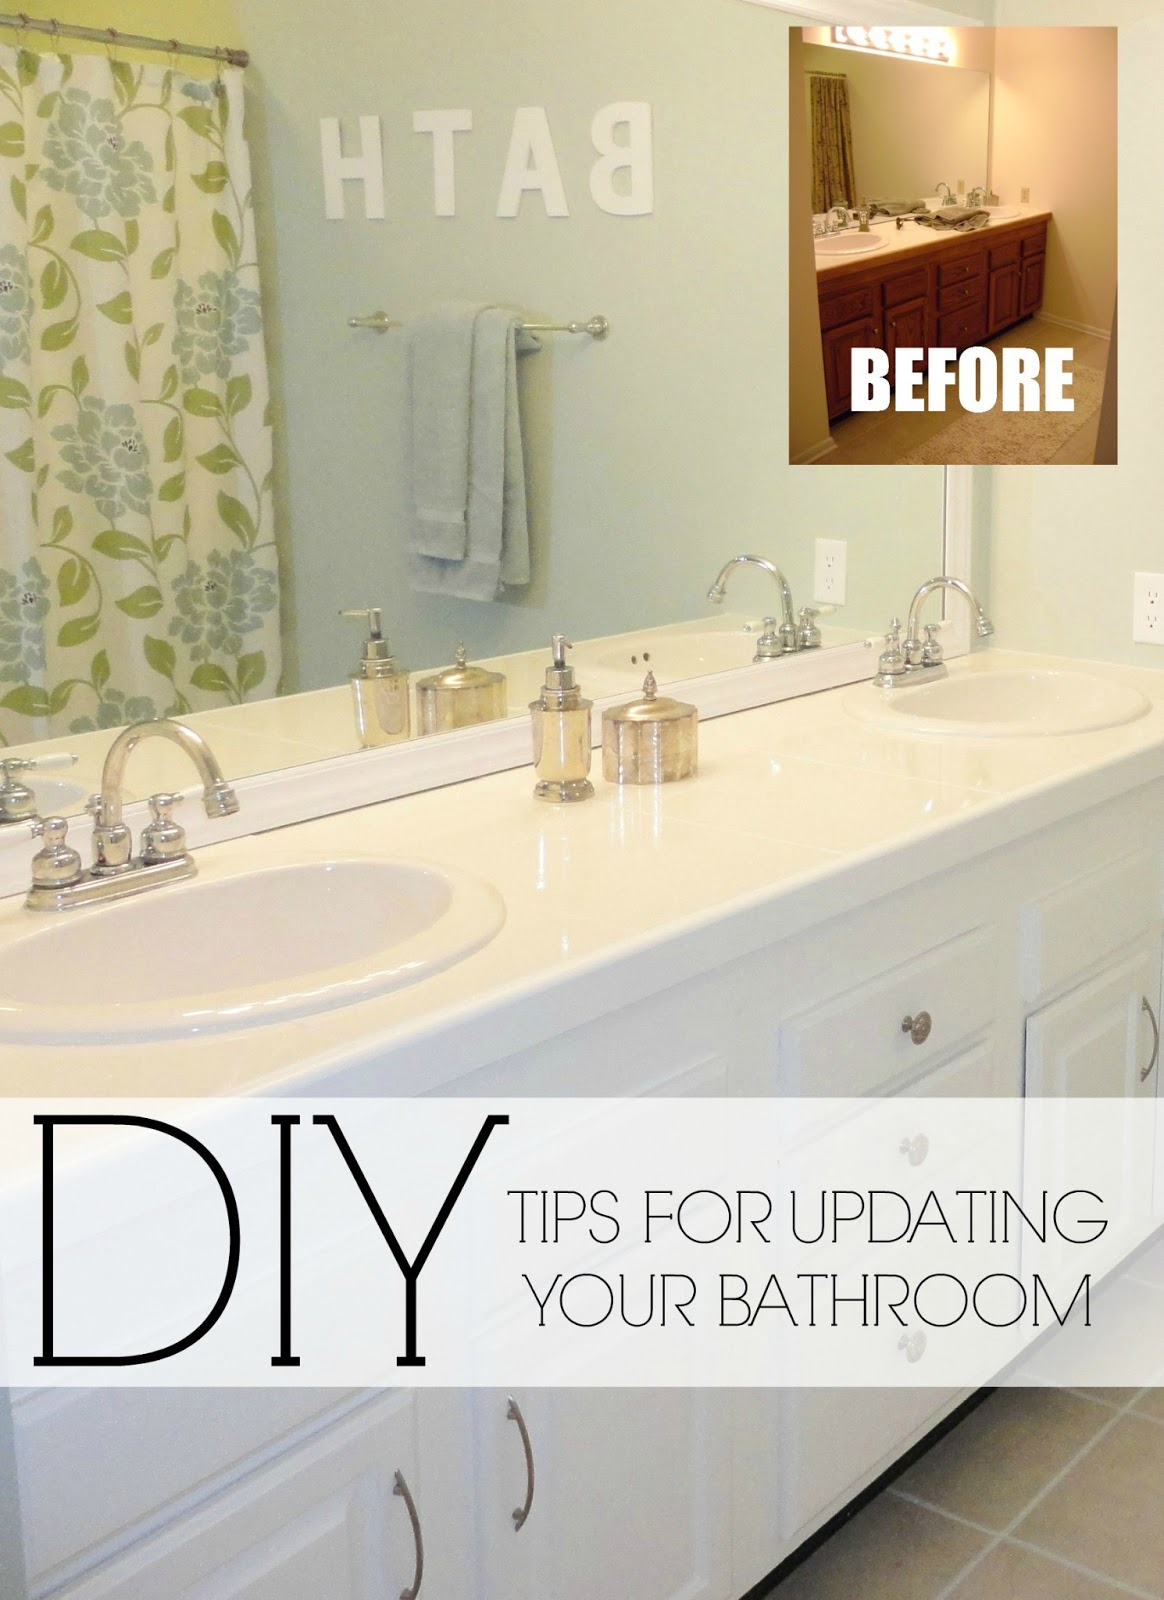 Bathroom diy decorations - Easy Diy Ideas For Updating Your Bathroom